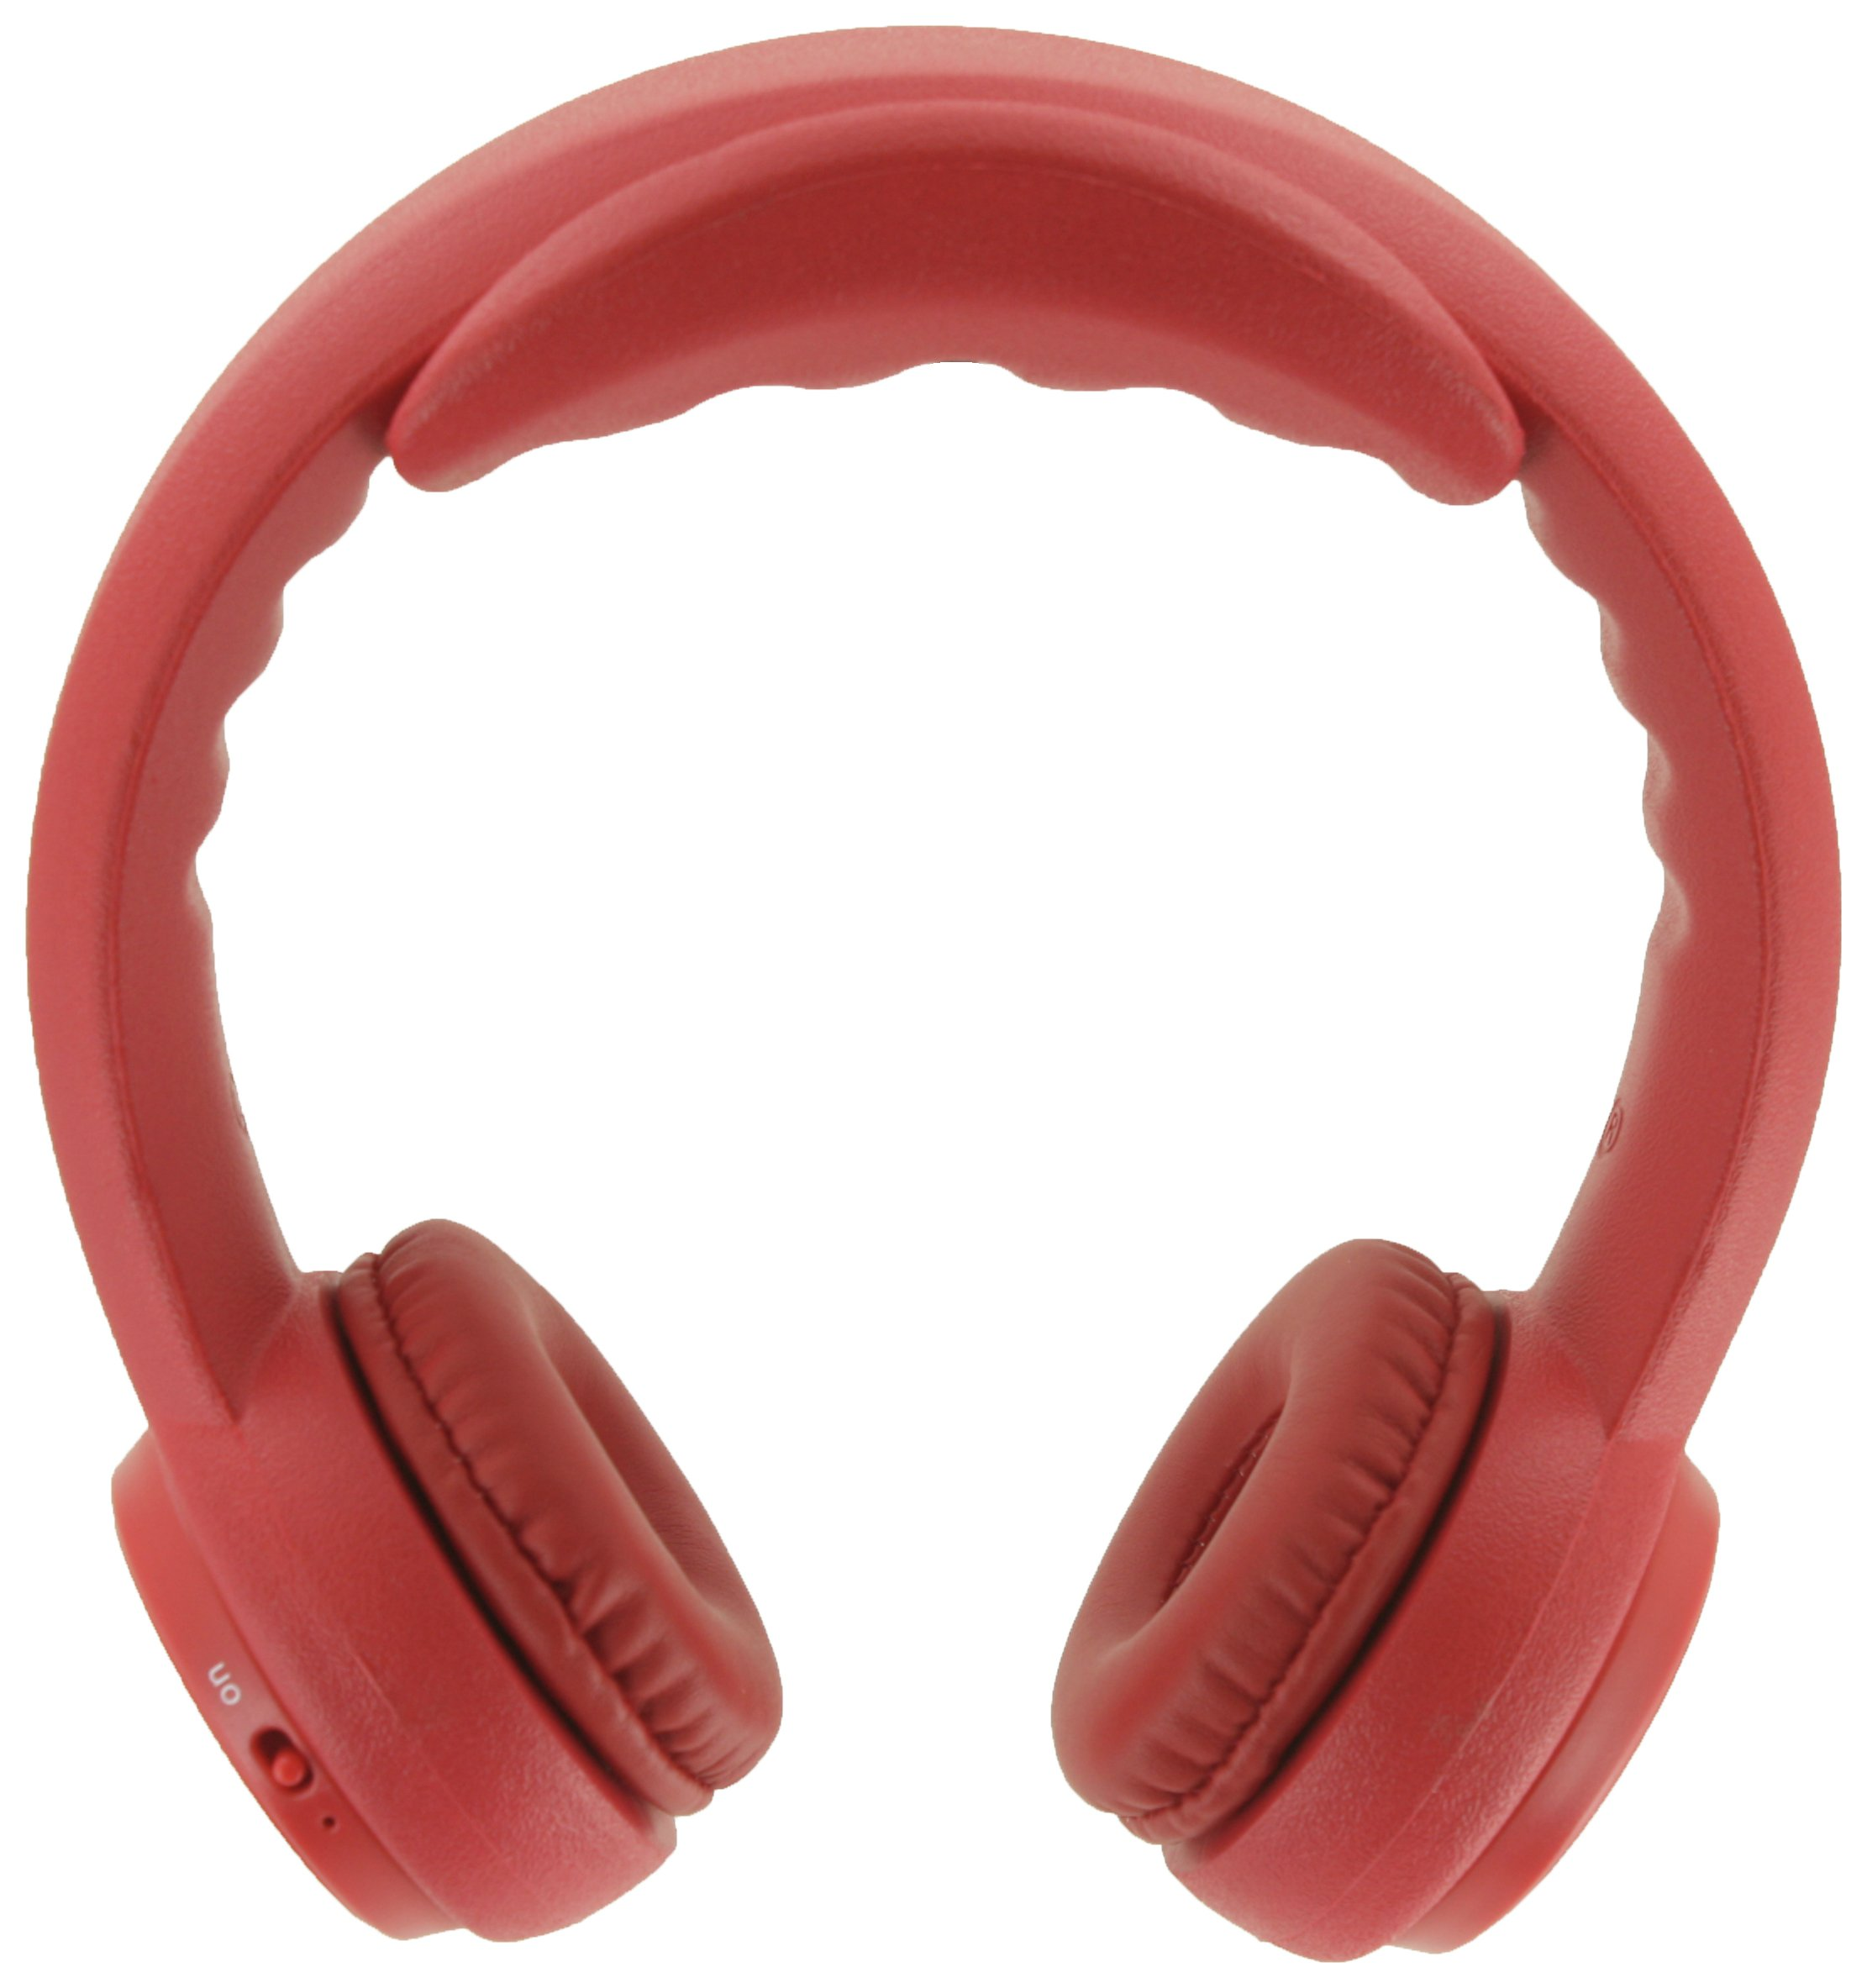 Headfoams HF-BT100 Kids Bluetooth On-Ear Headphones - Red